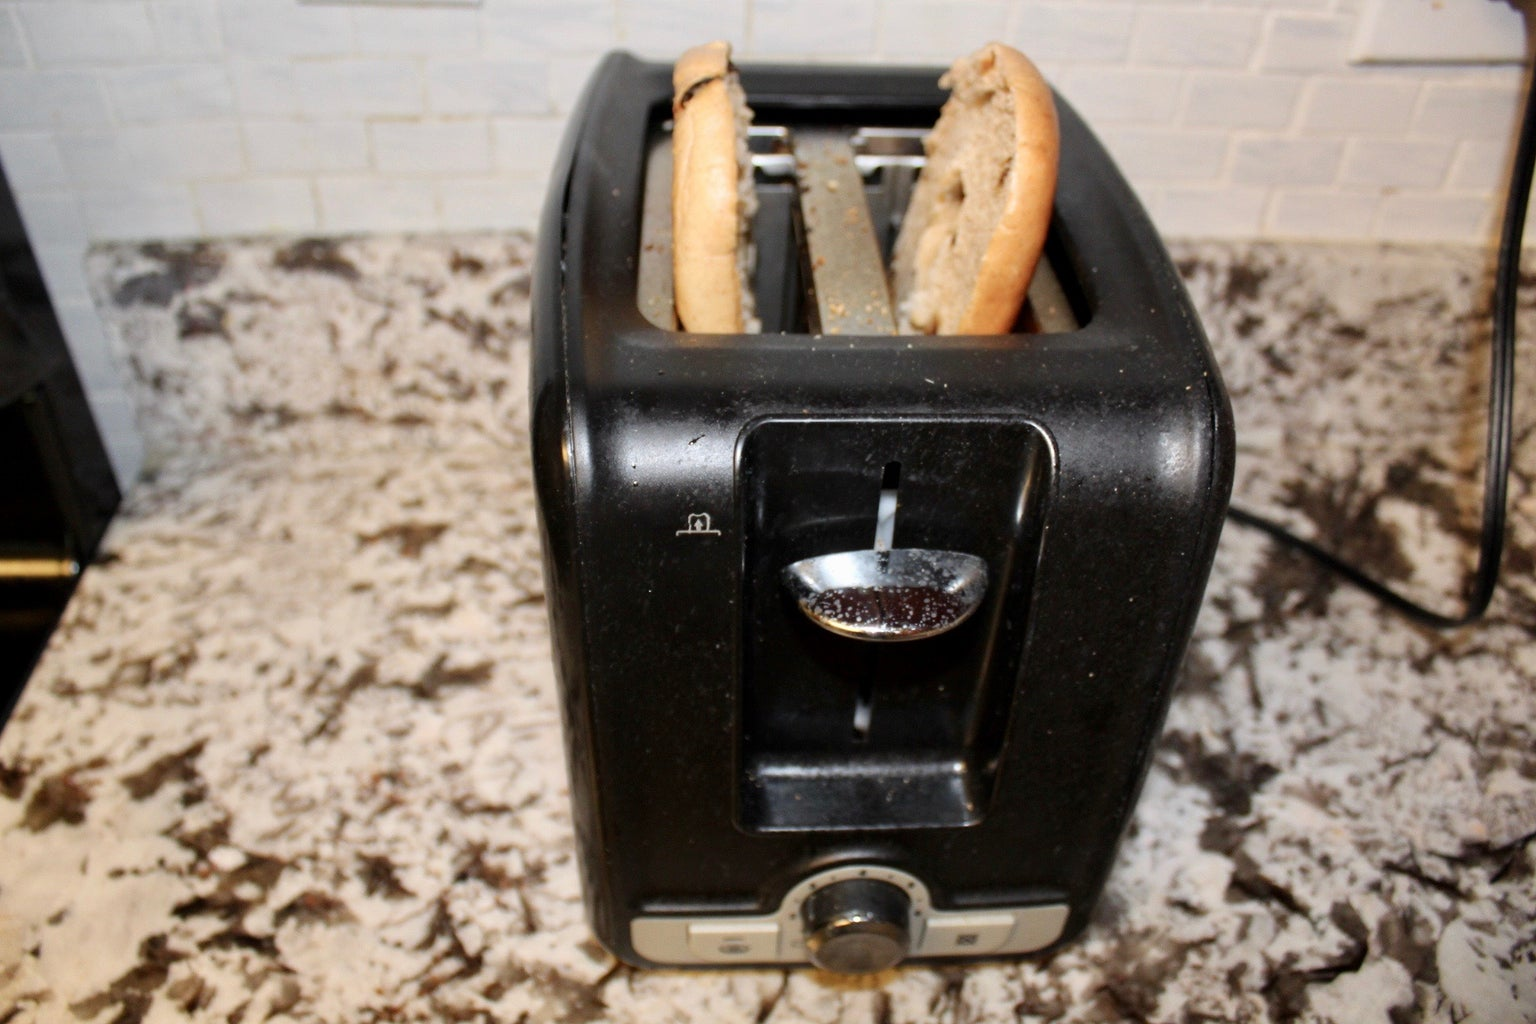 Toasting the Bagel